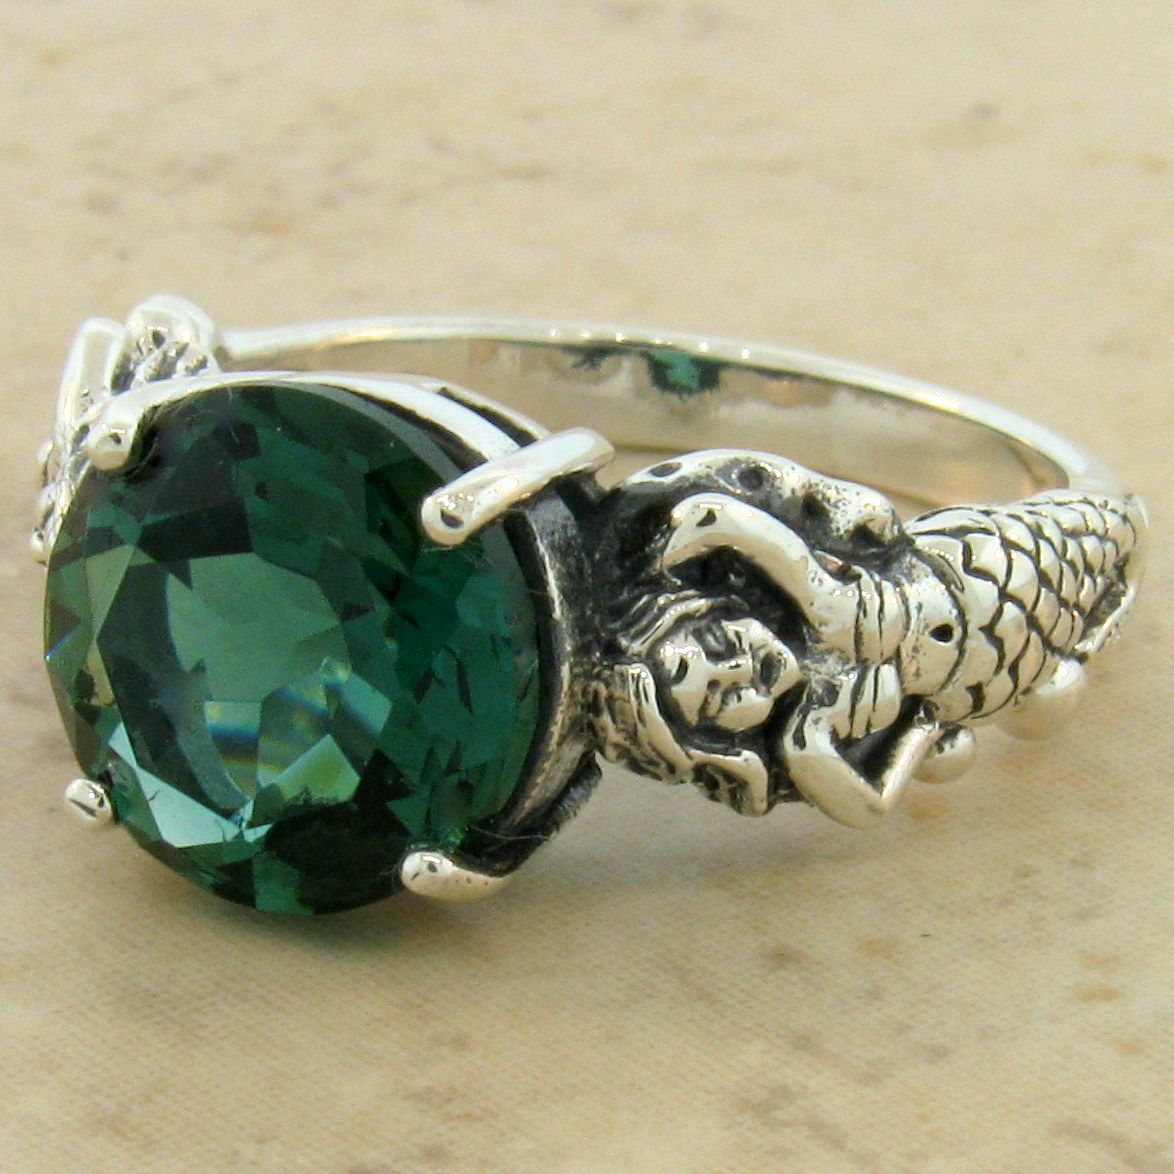 MERMAID RING 925 STERLING SILVER GREEN SIM EMERALD VICTORIAN STYLE SIZE 10 #956